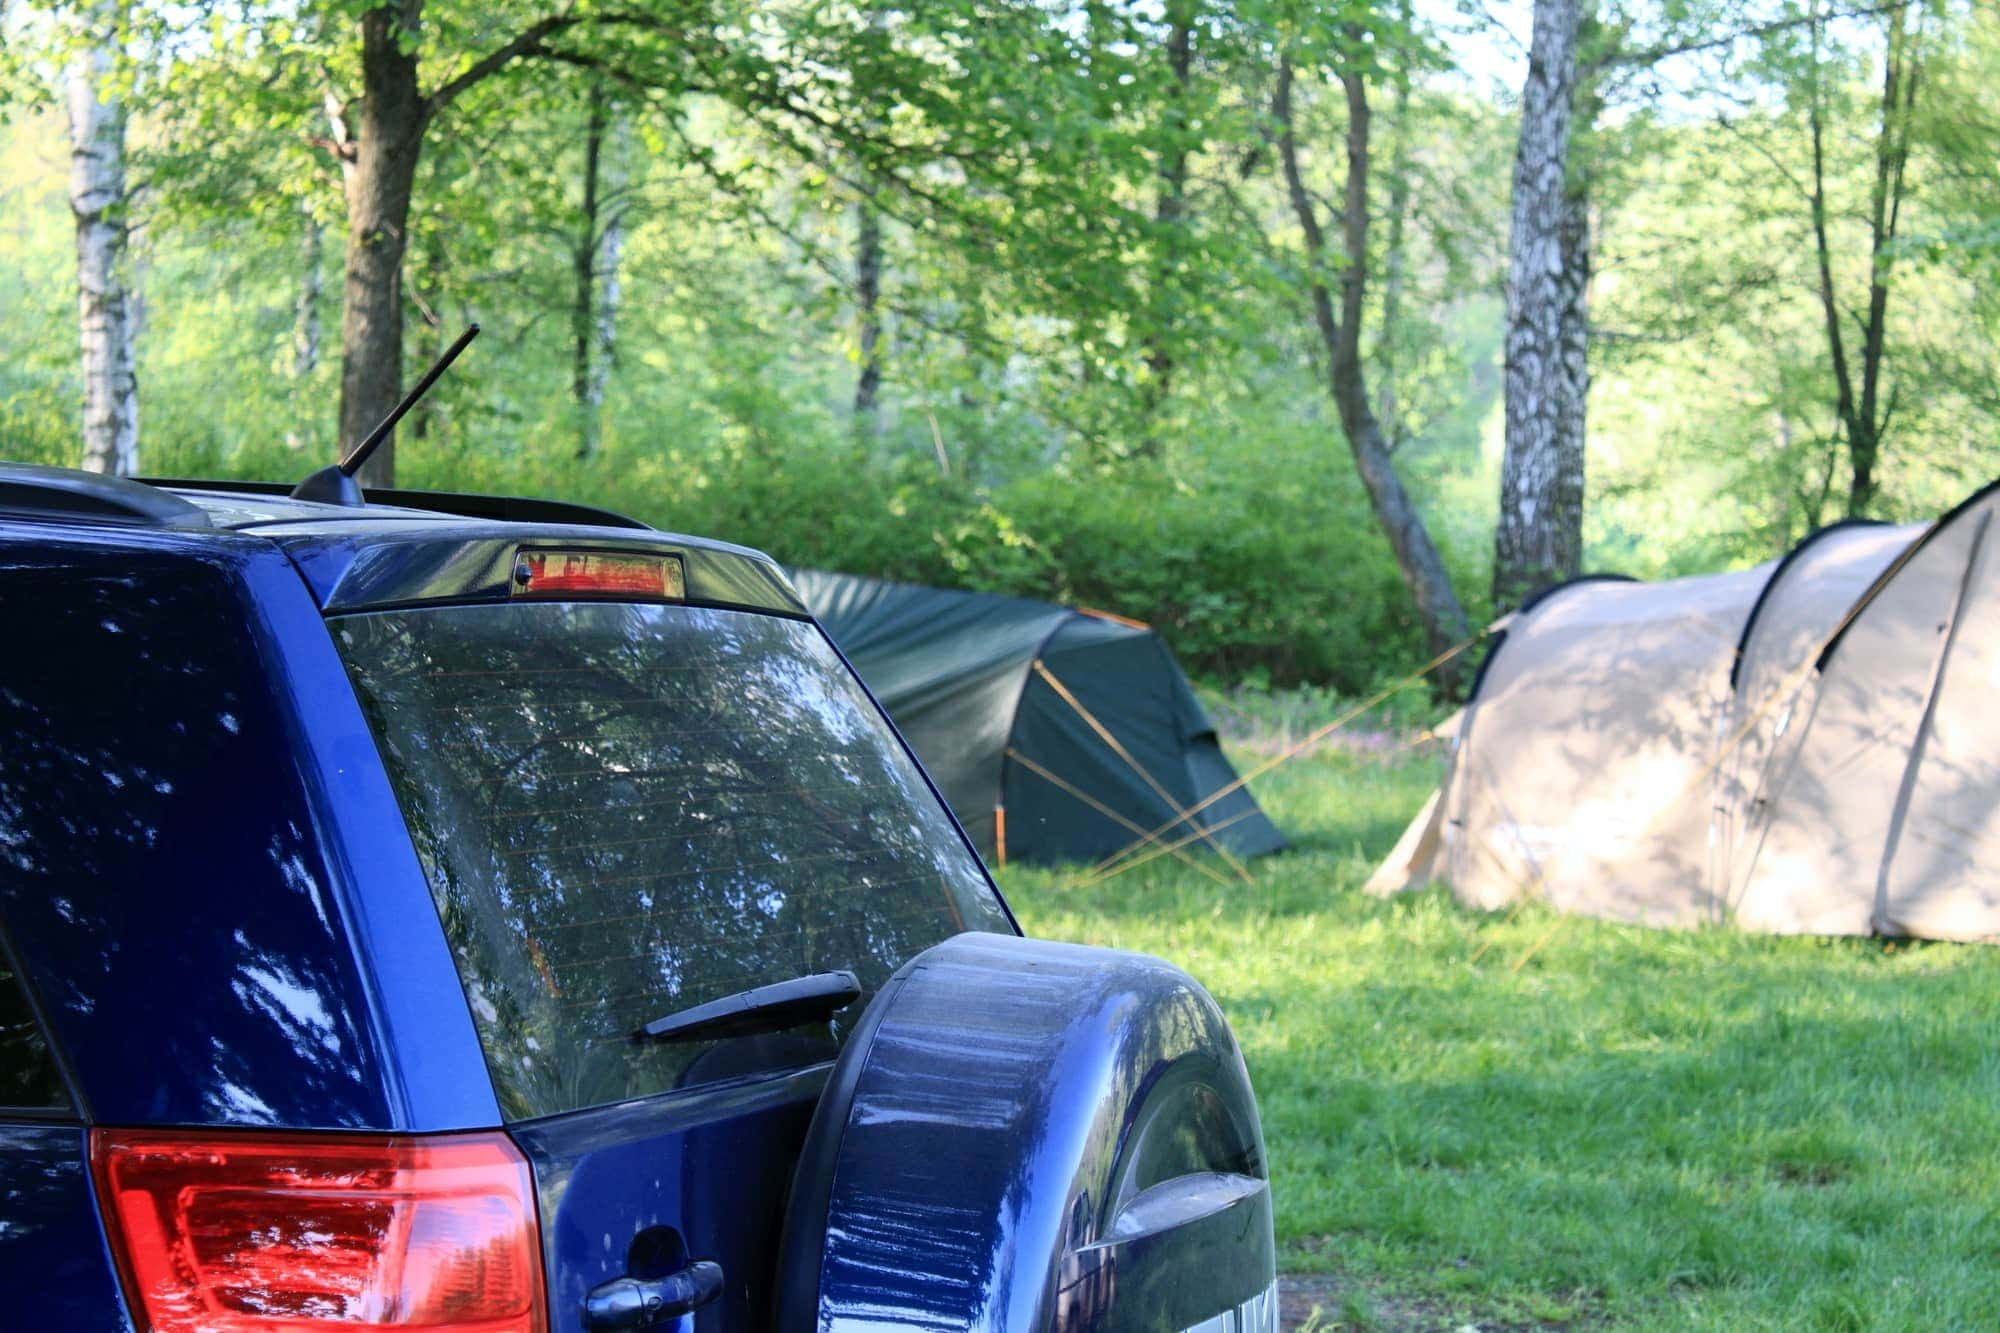 Camping is an affordable way to travel with kids